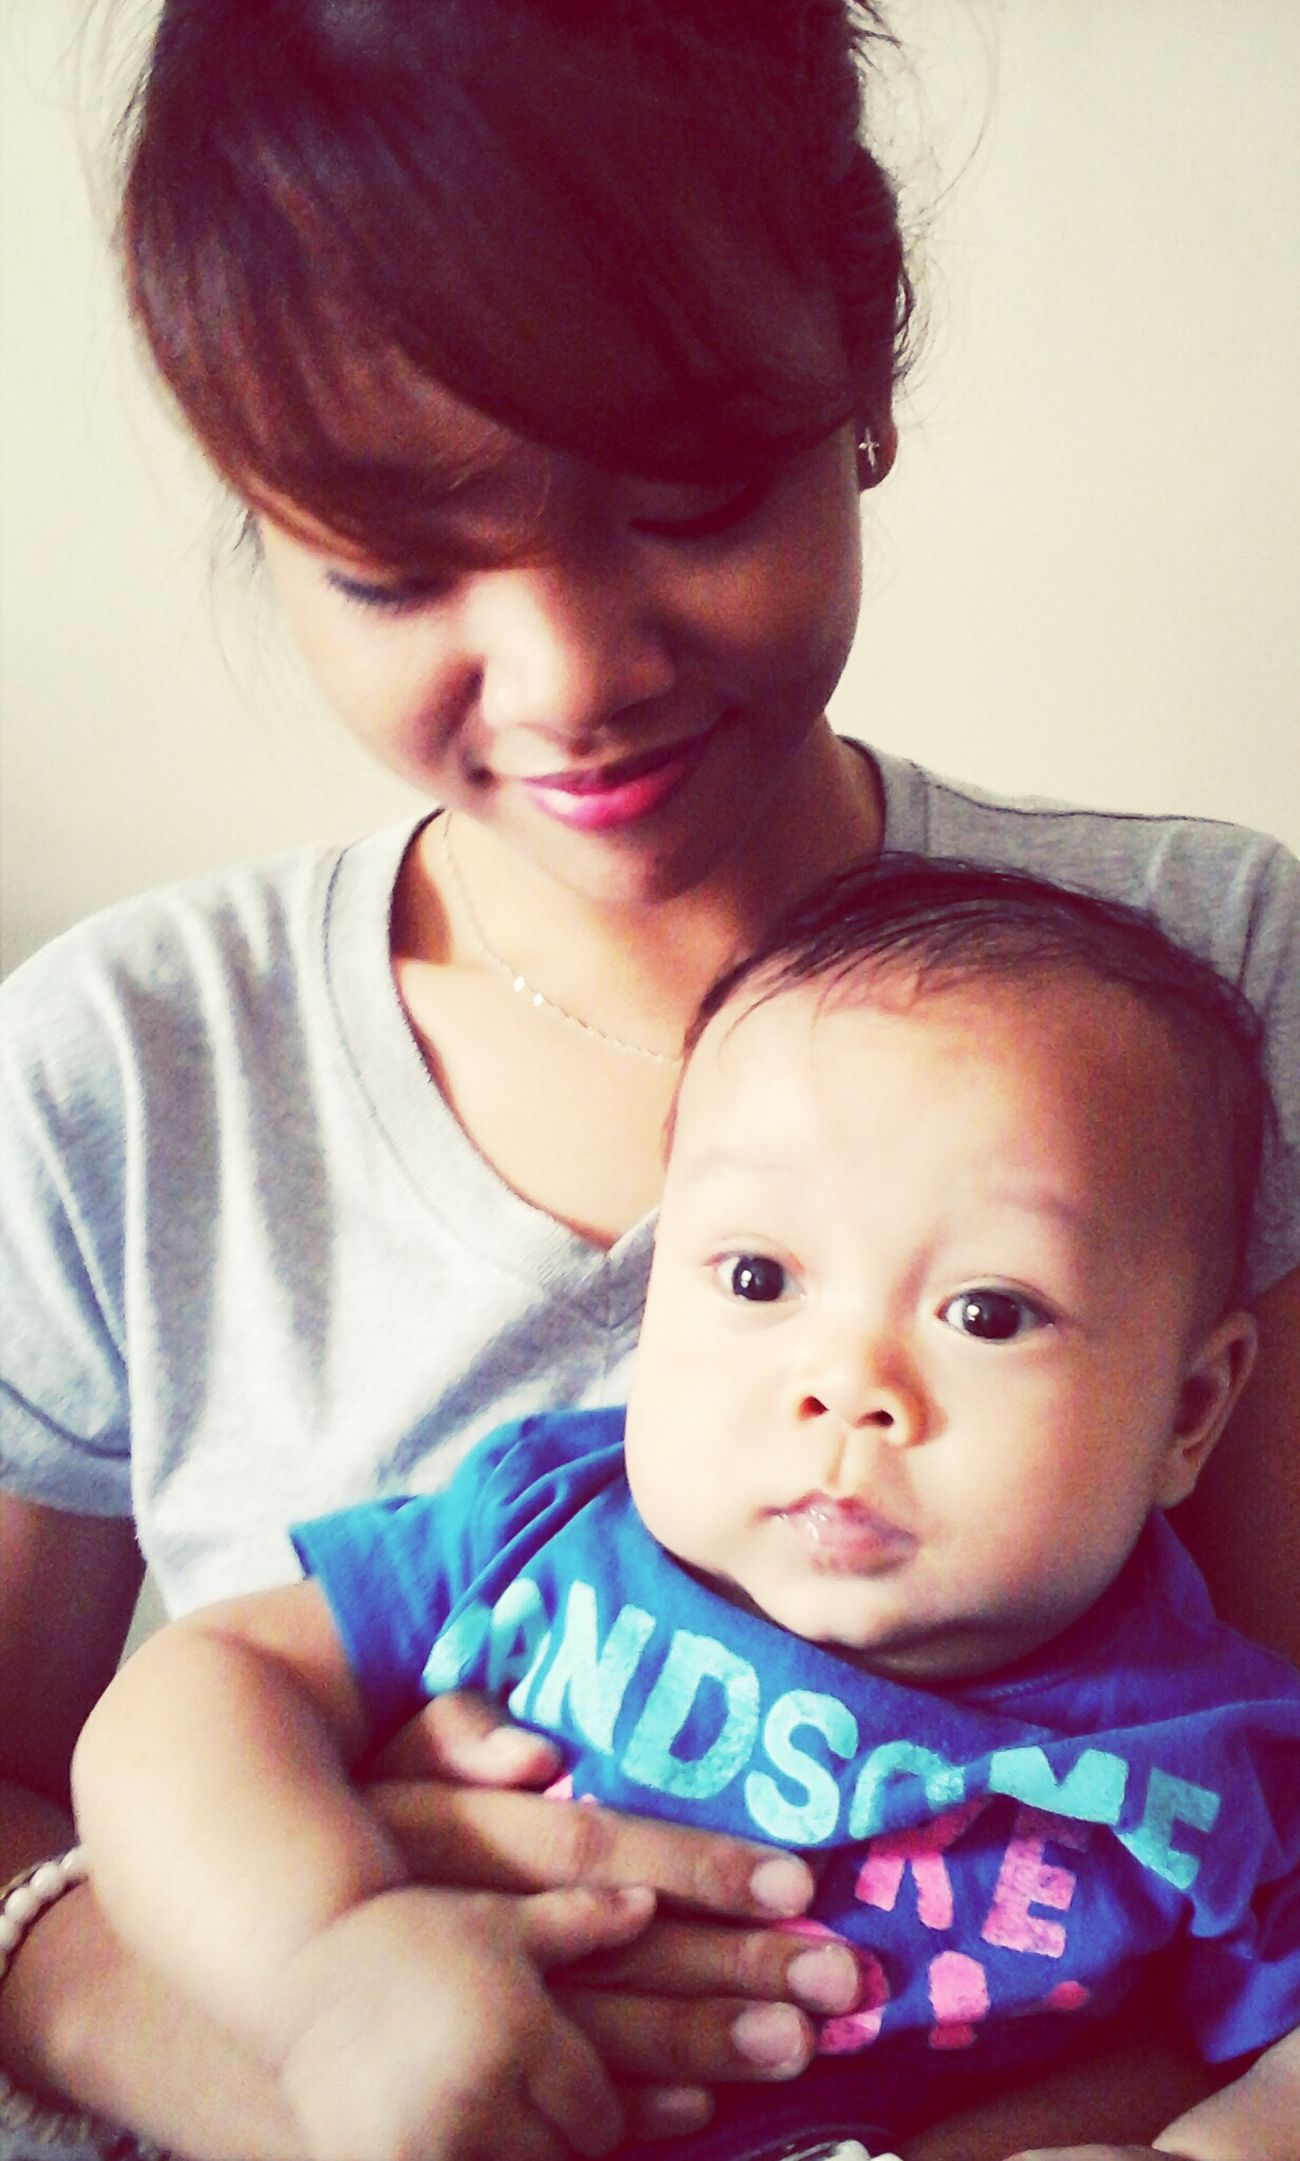 Practice! Haha. Joke. I'm with a cute baby. ♡ Jzan